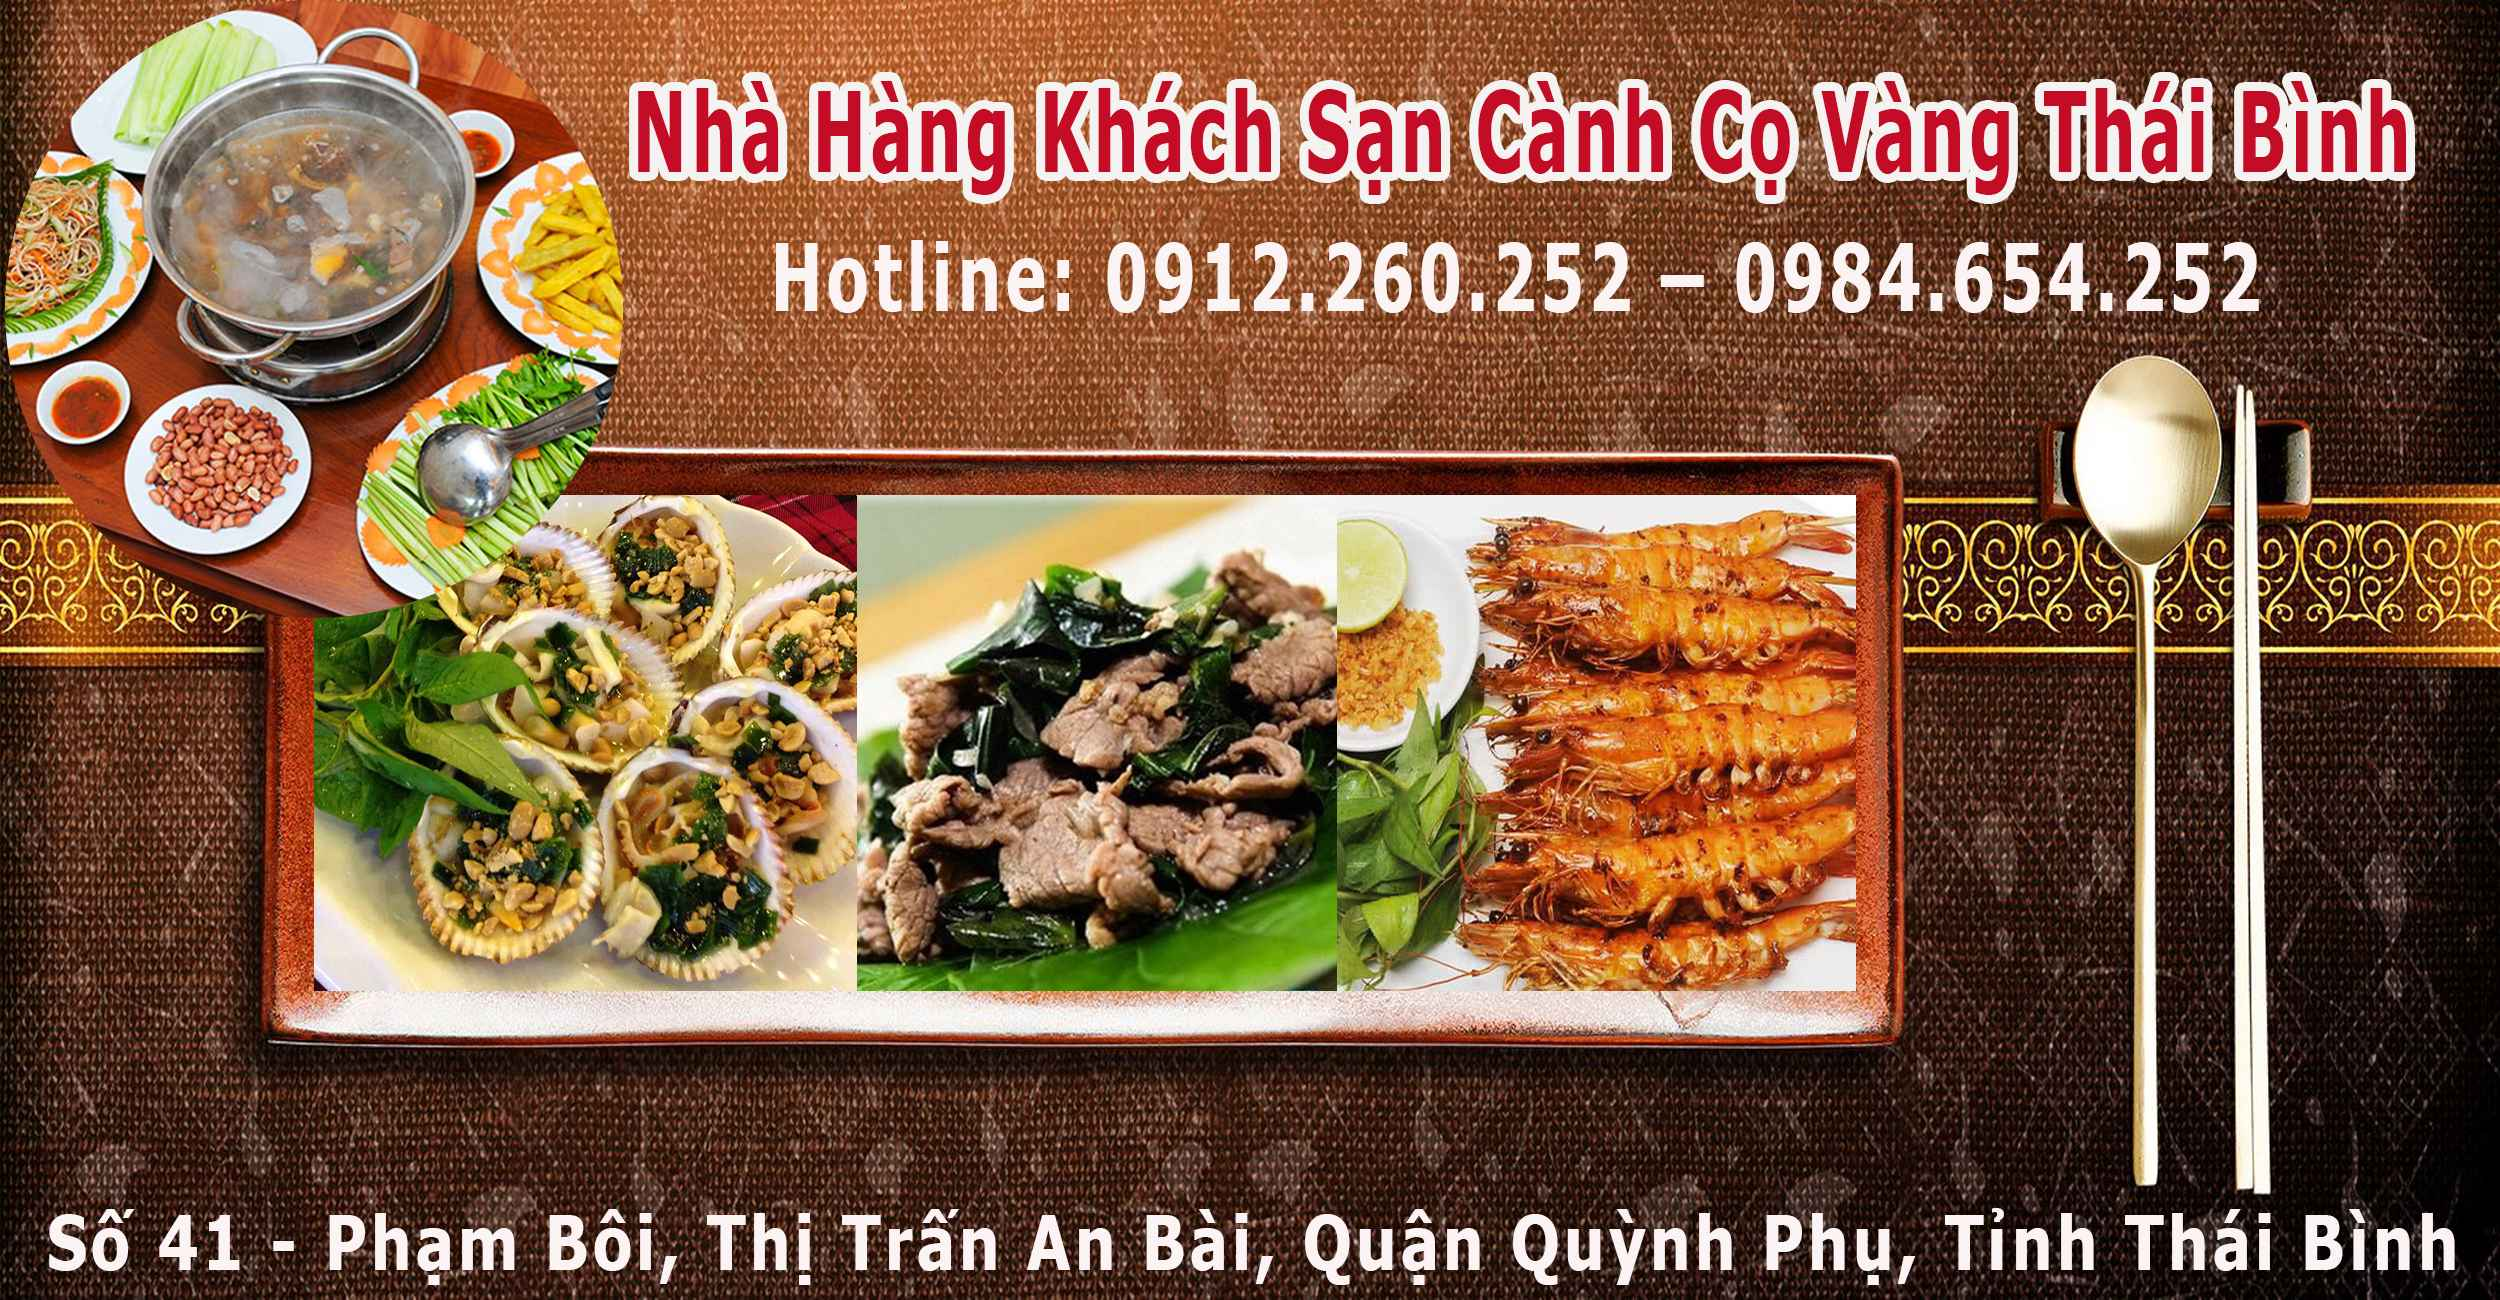 banner-khach-san-canh-co-vang